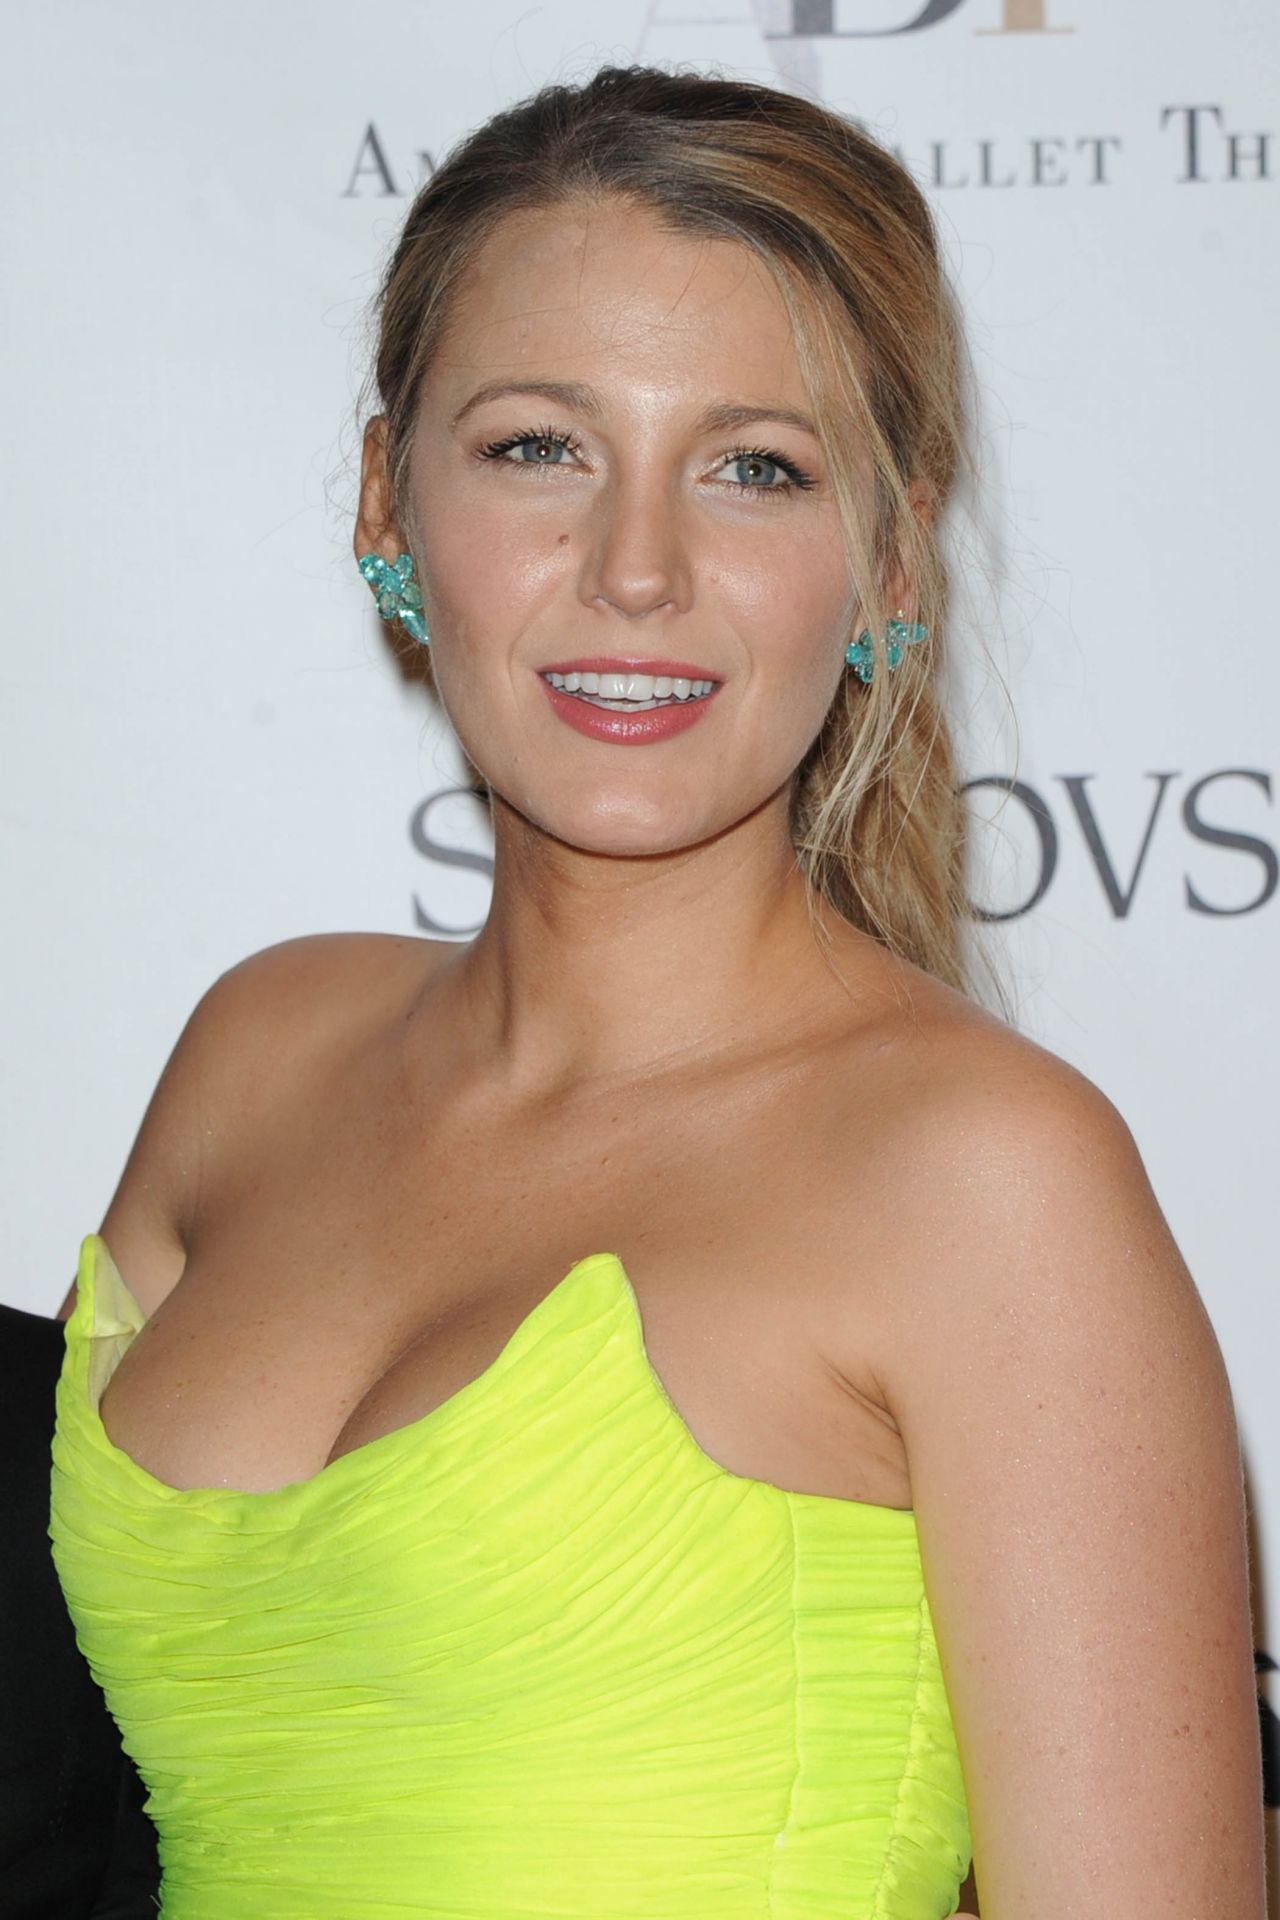 Cleavage Blake Lively nudes (44 photo), Ass, Leaked, Twitter, lingerie 2006